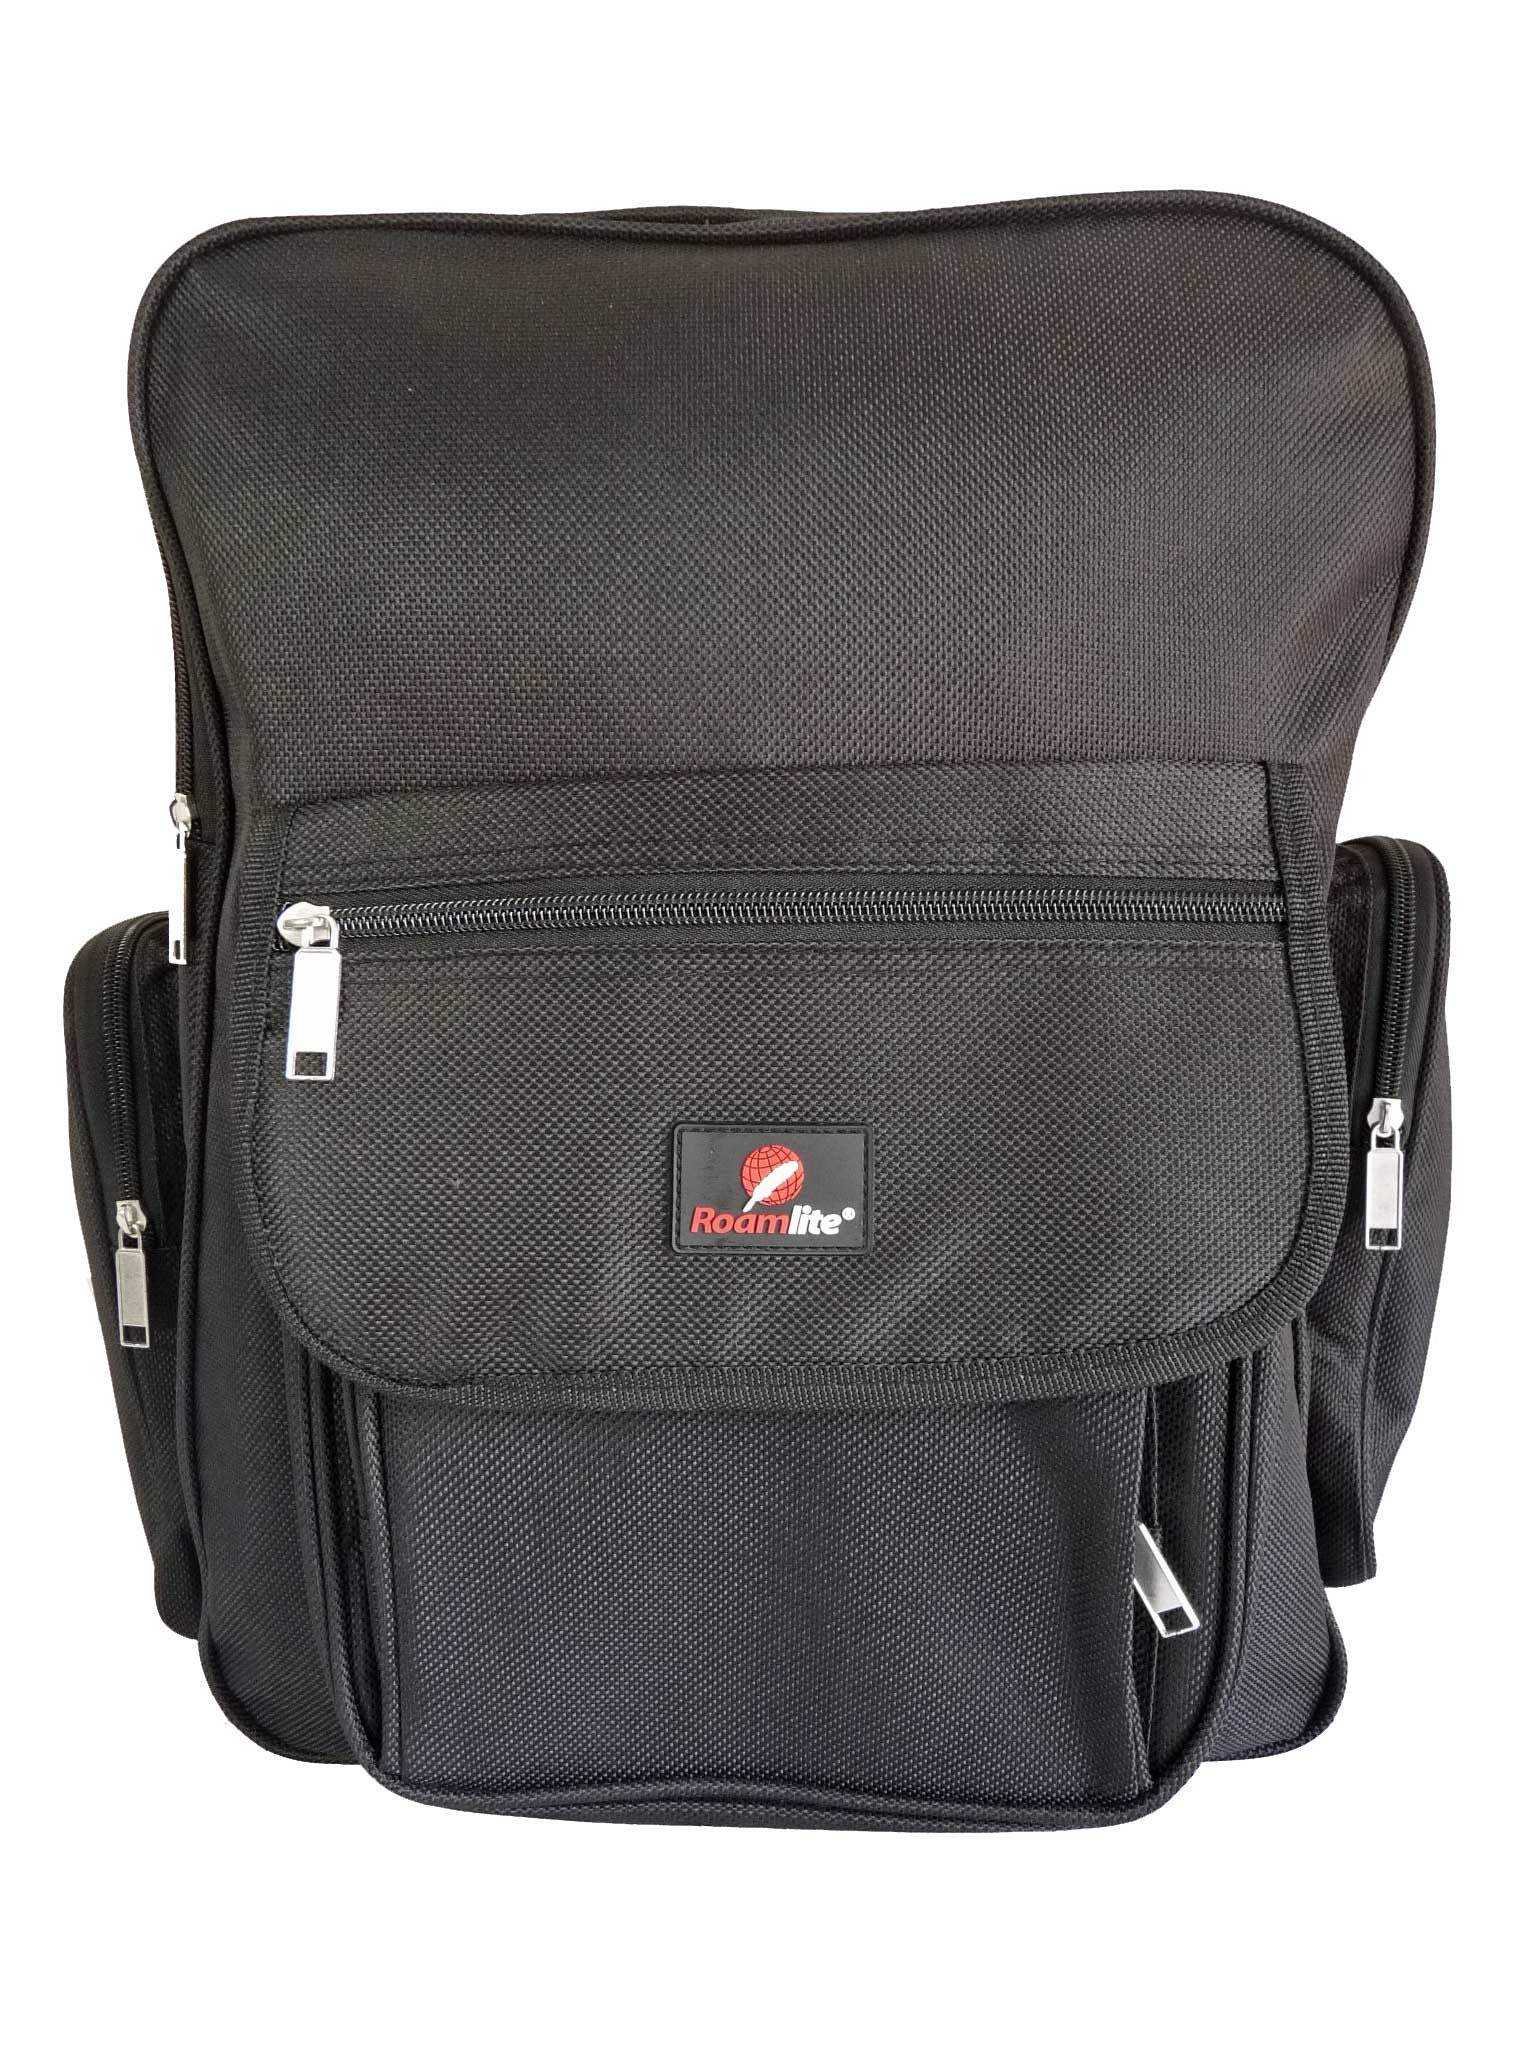 Black School Backpack RL60Kf Front View